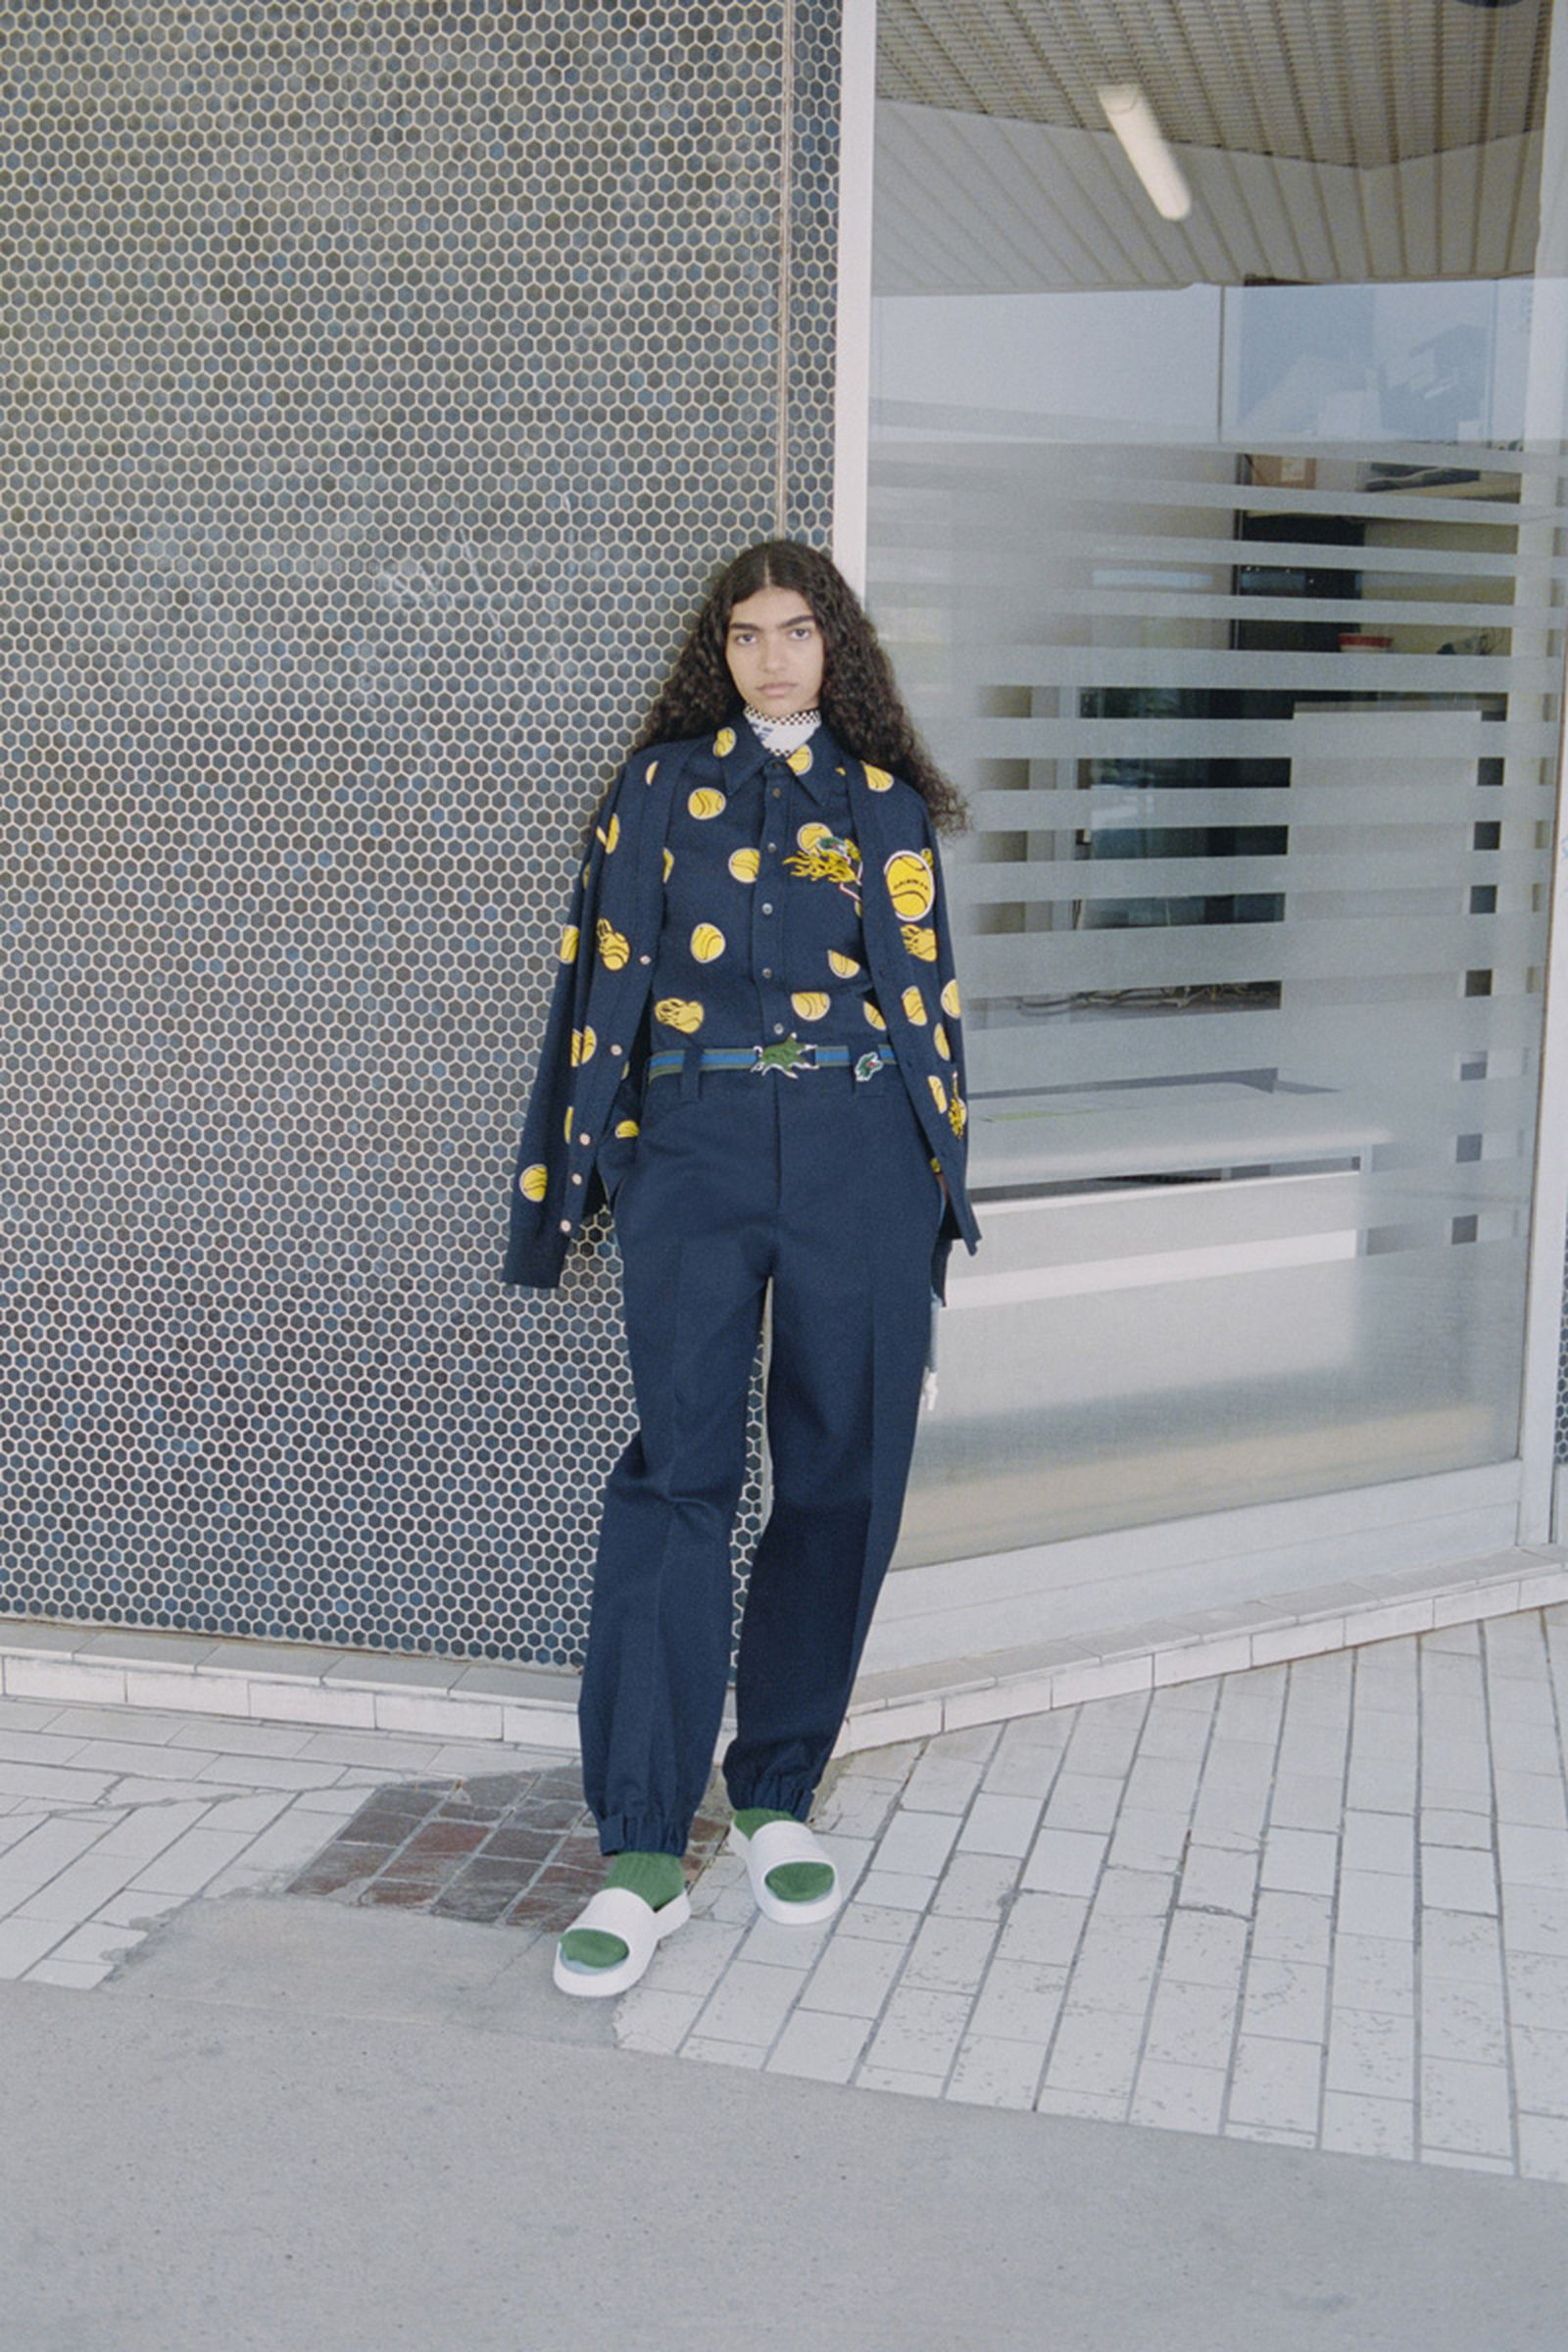 lacoste-fall-winter-2021-collection-lookbook-5